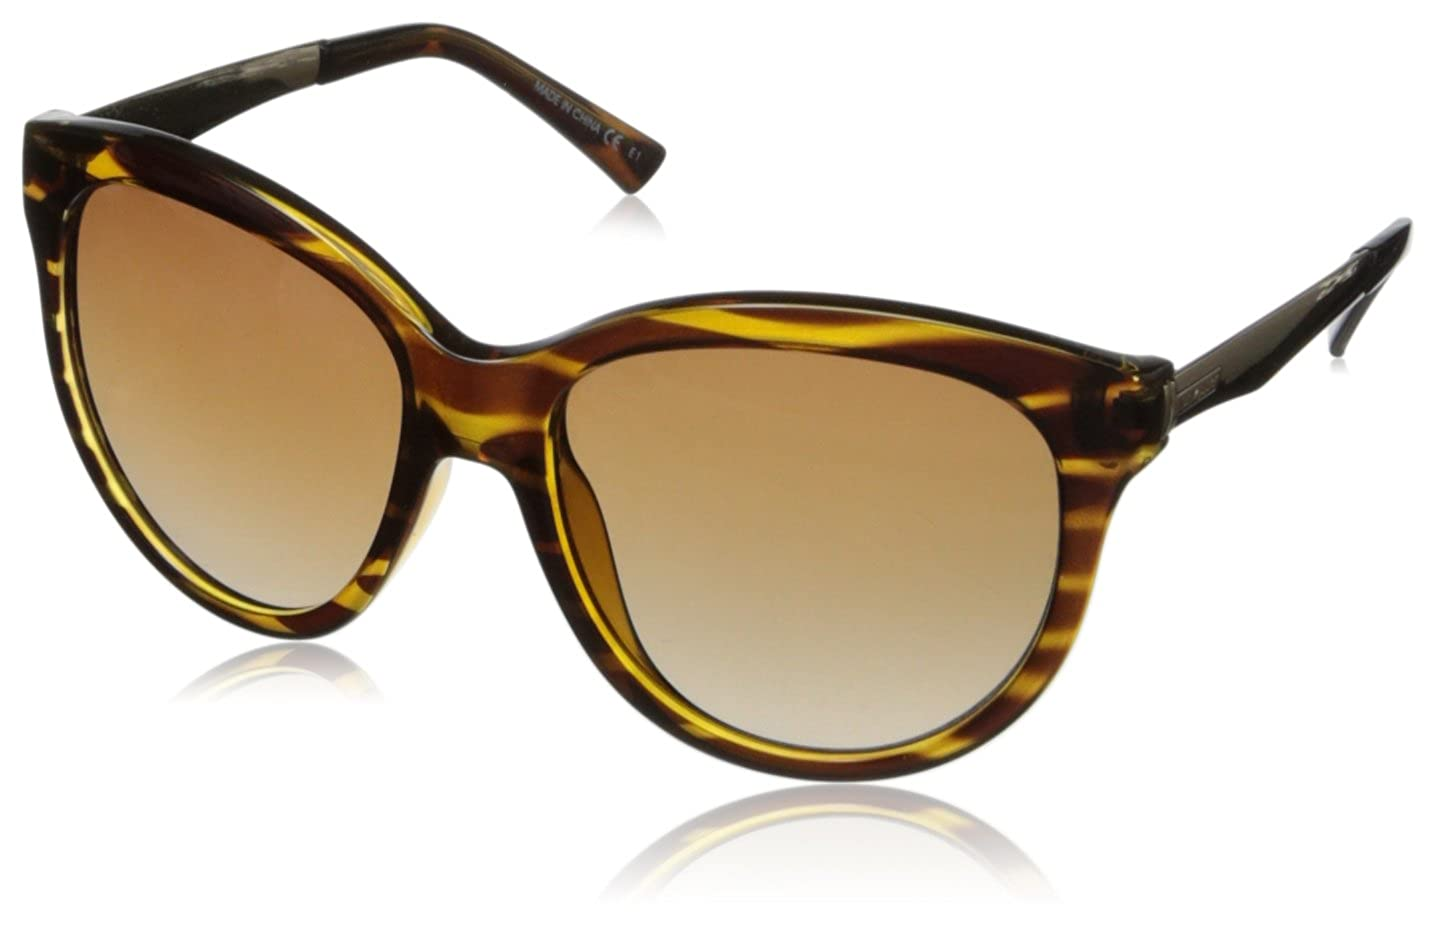 1c30da29fe Amazon.com  VonZipper Women s Cheeks Round Sunglasses